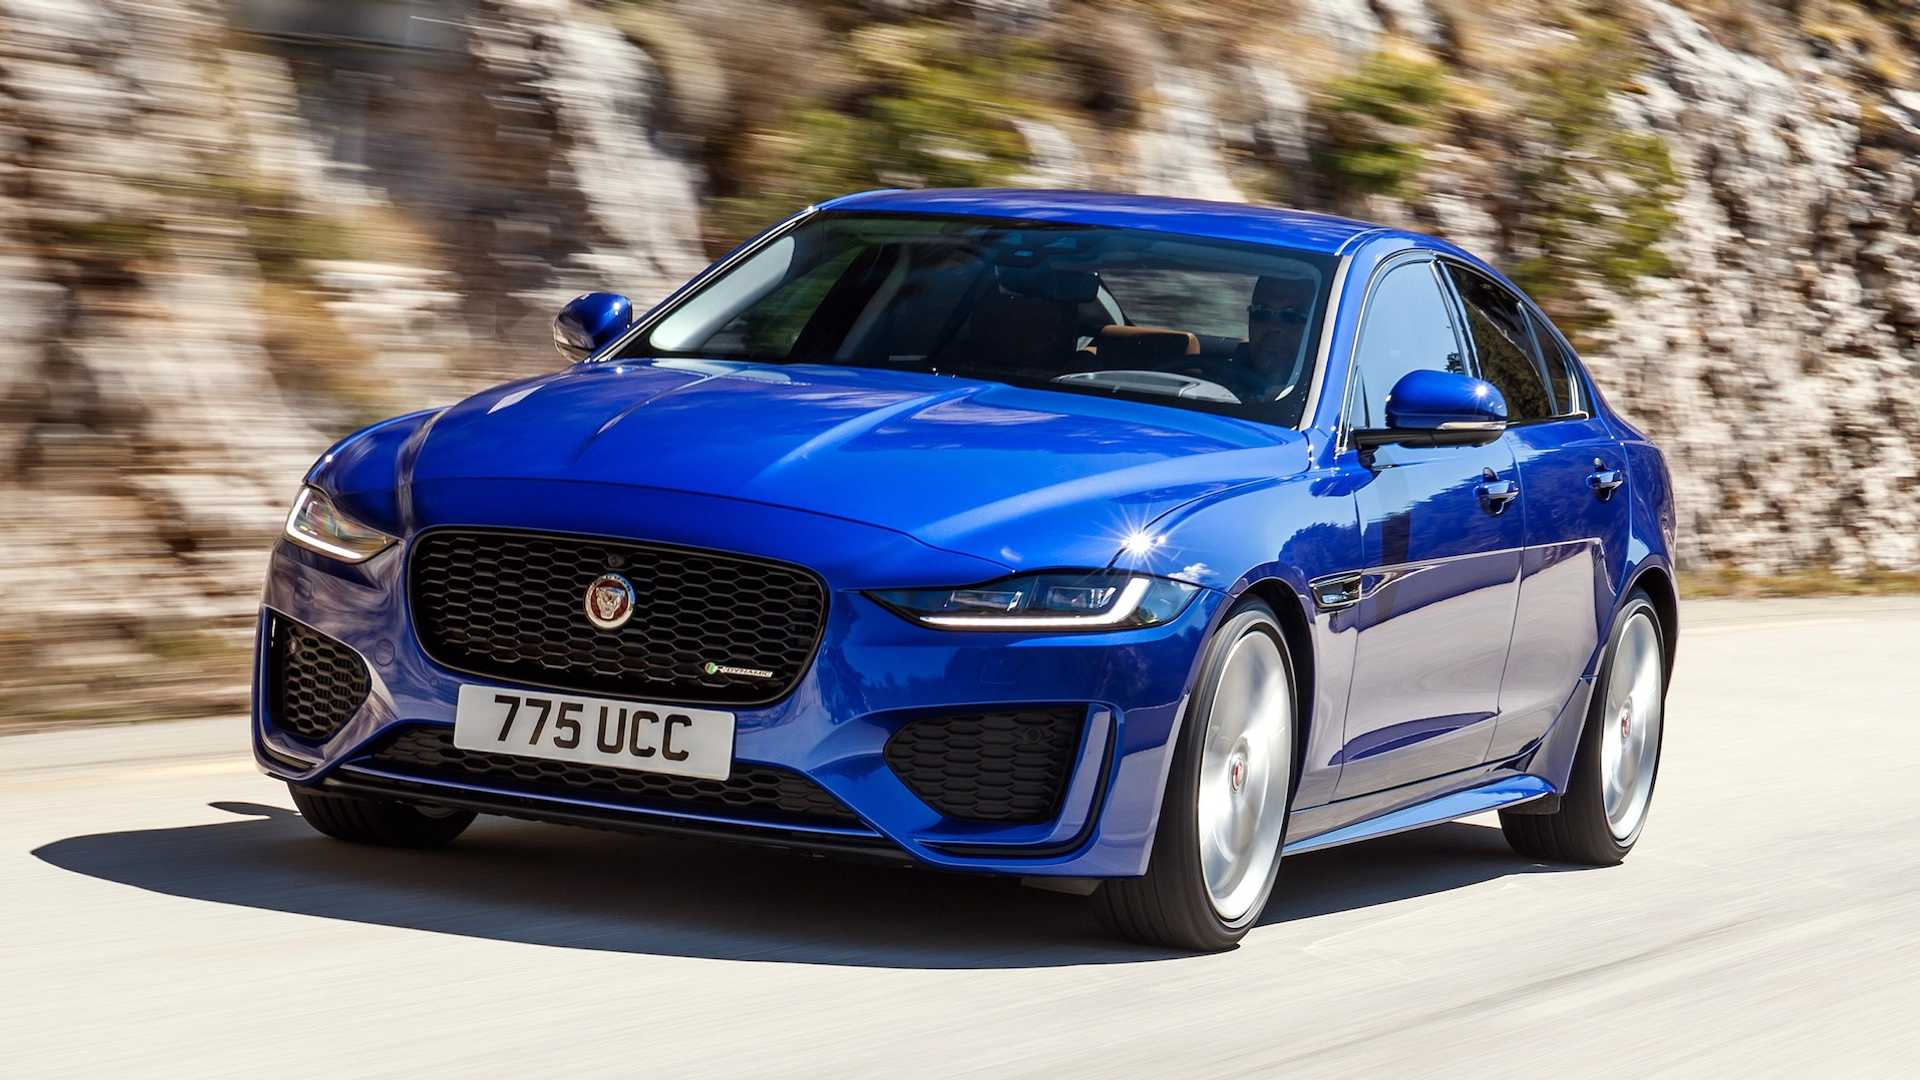 20 All New Jaguar Xe 2020 Brasil New Concept